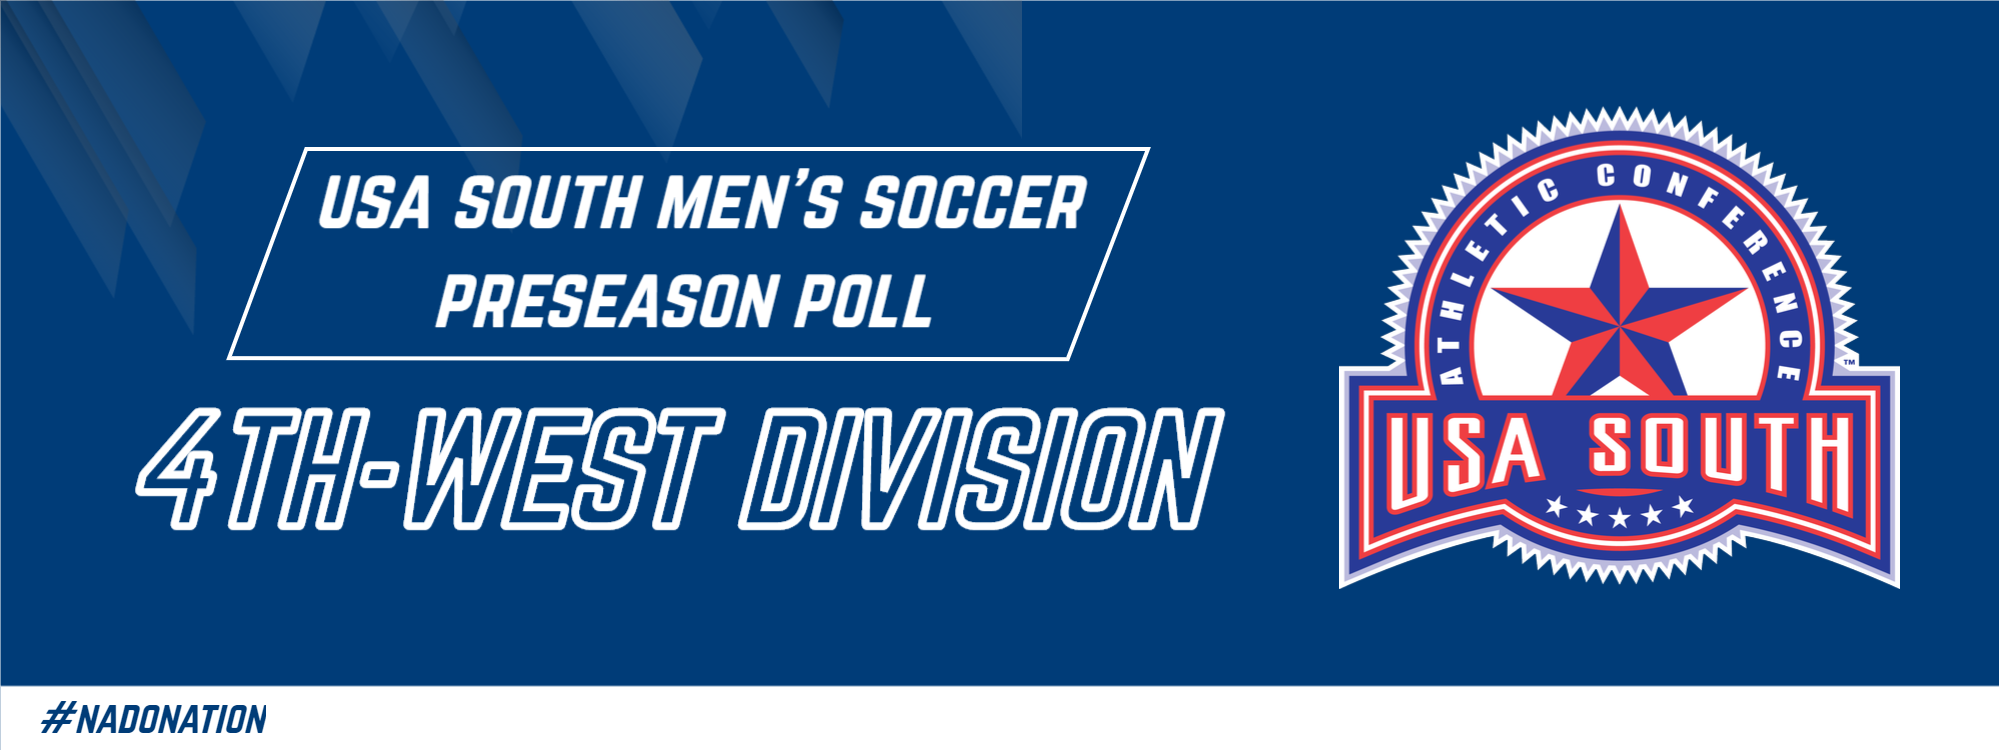 Season Preview: USA South Releases Preseason Polls; BC Men's Soccer Picked Fourth in West Division